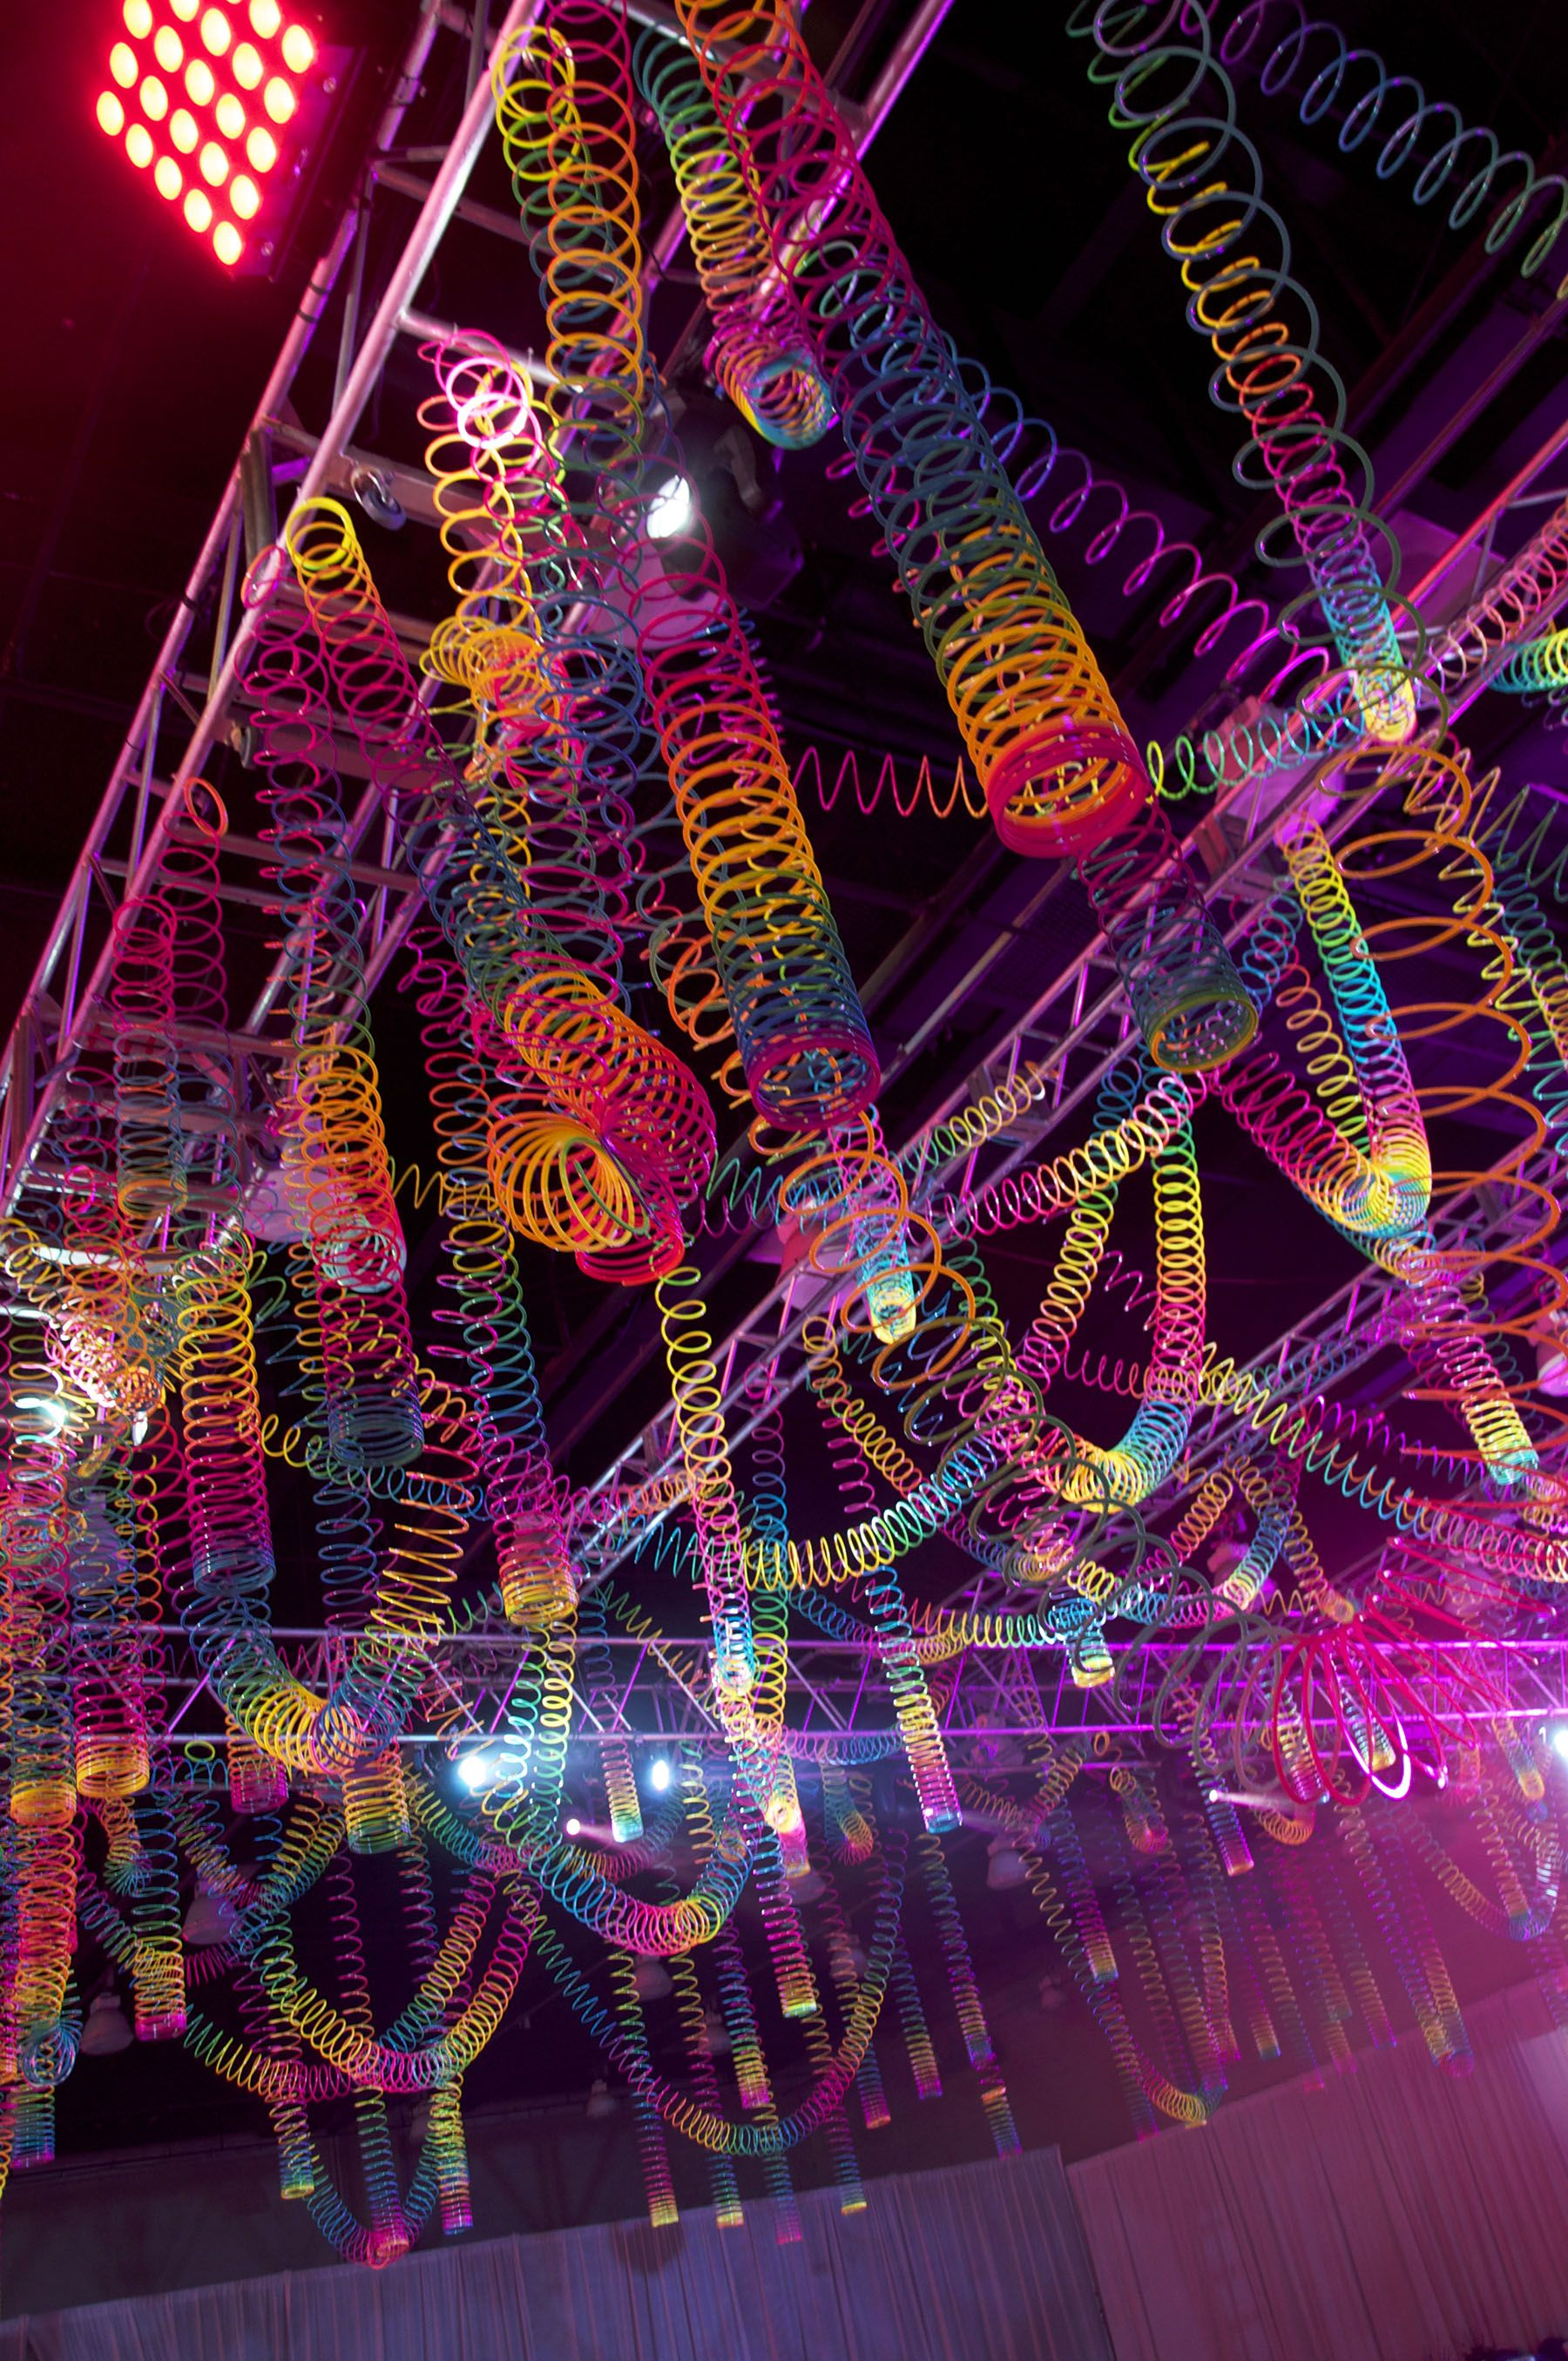 Best Rainbow Slinky Ceiling Rave Inspiration Pinterest This Month